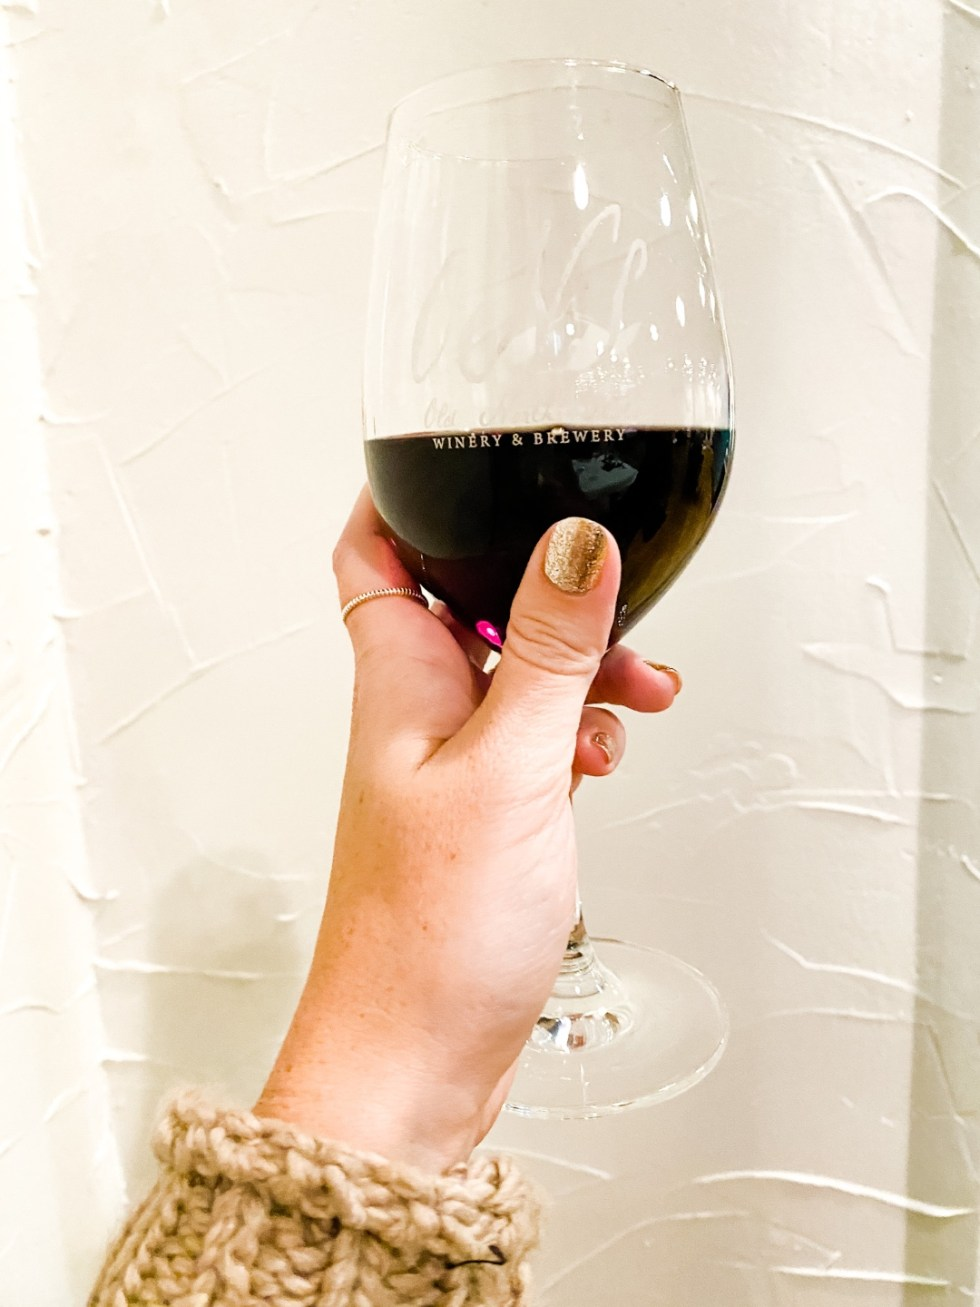 Western NC Wineries: 6 Wineries to Visit During your Next Girls' Weekend - I'm Fixin' To - @mbg0112 |Western NC Wineries by popular NC blog, I'm Fixin' To: image of a woman holding a glass of red wine at Old North State Winery.